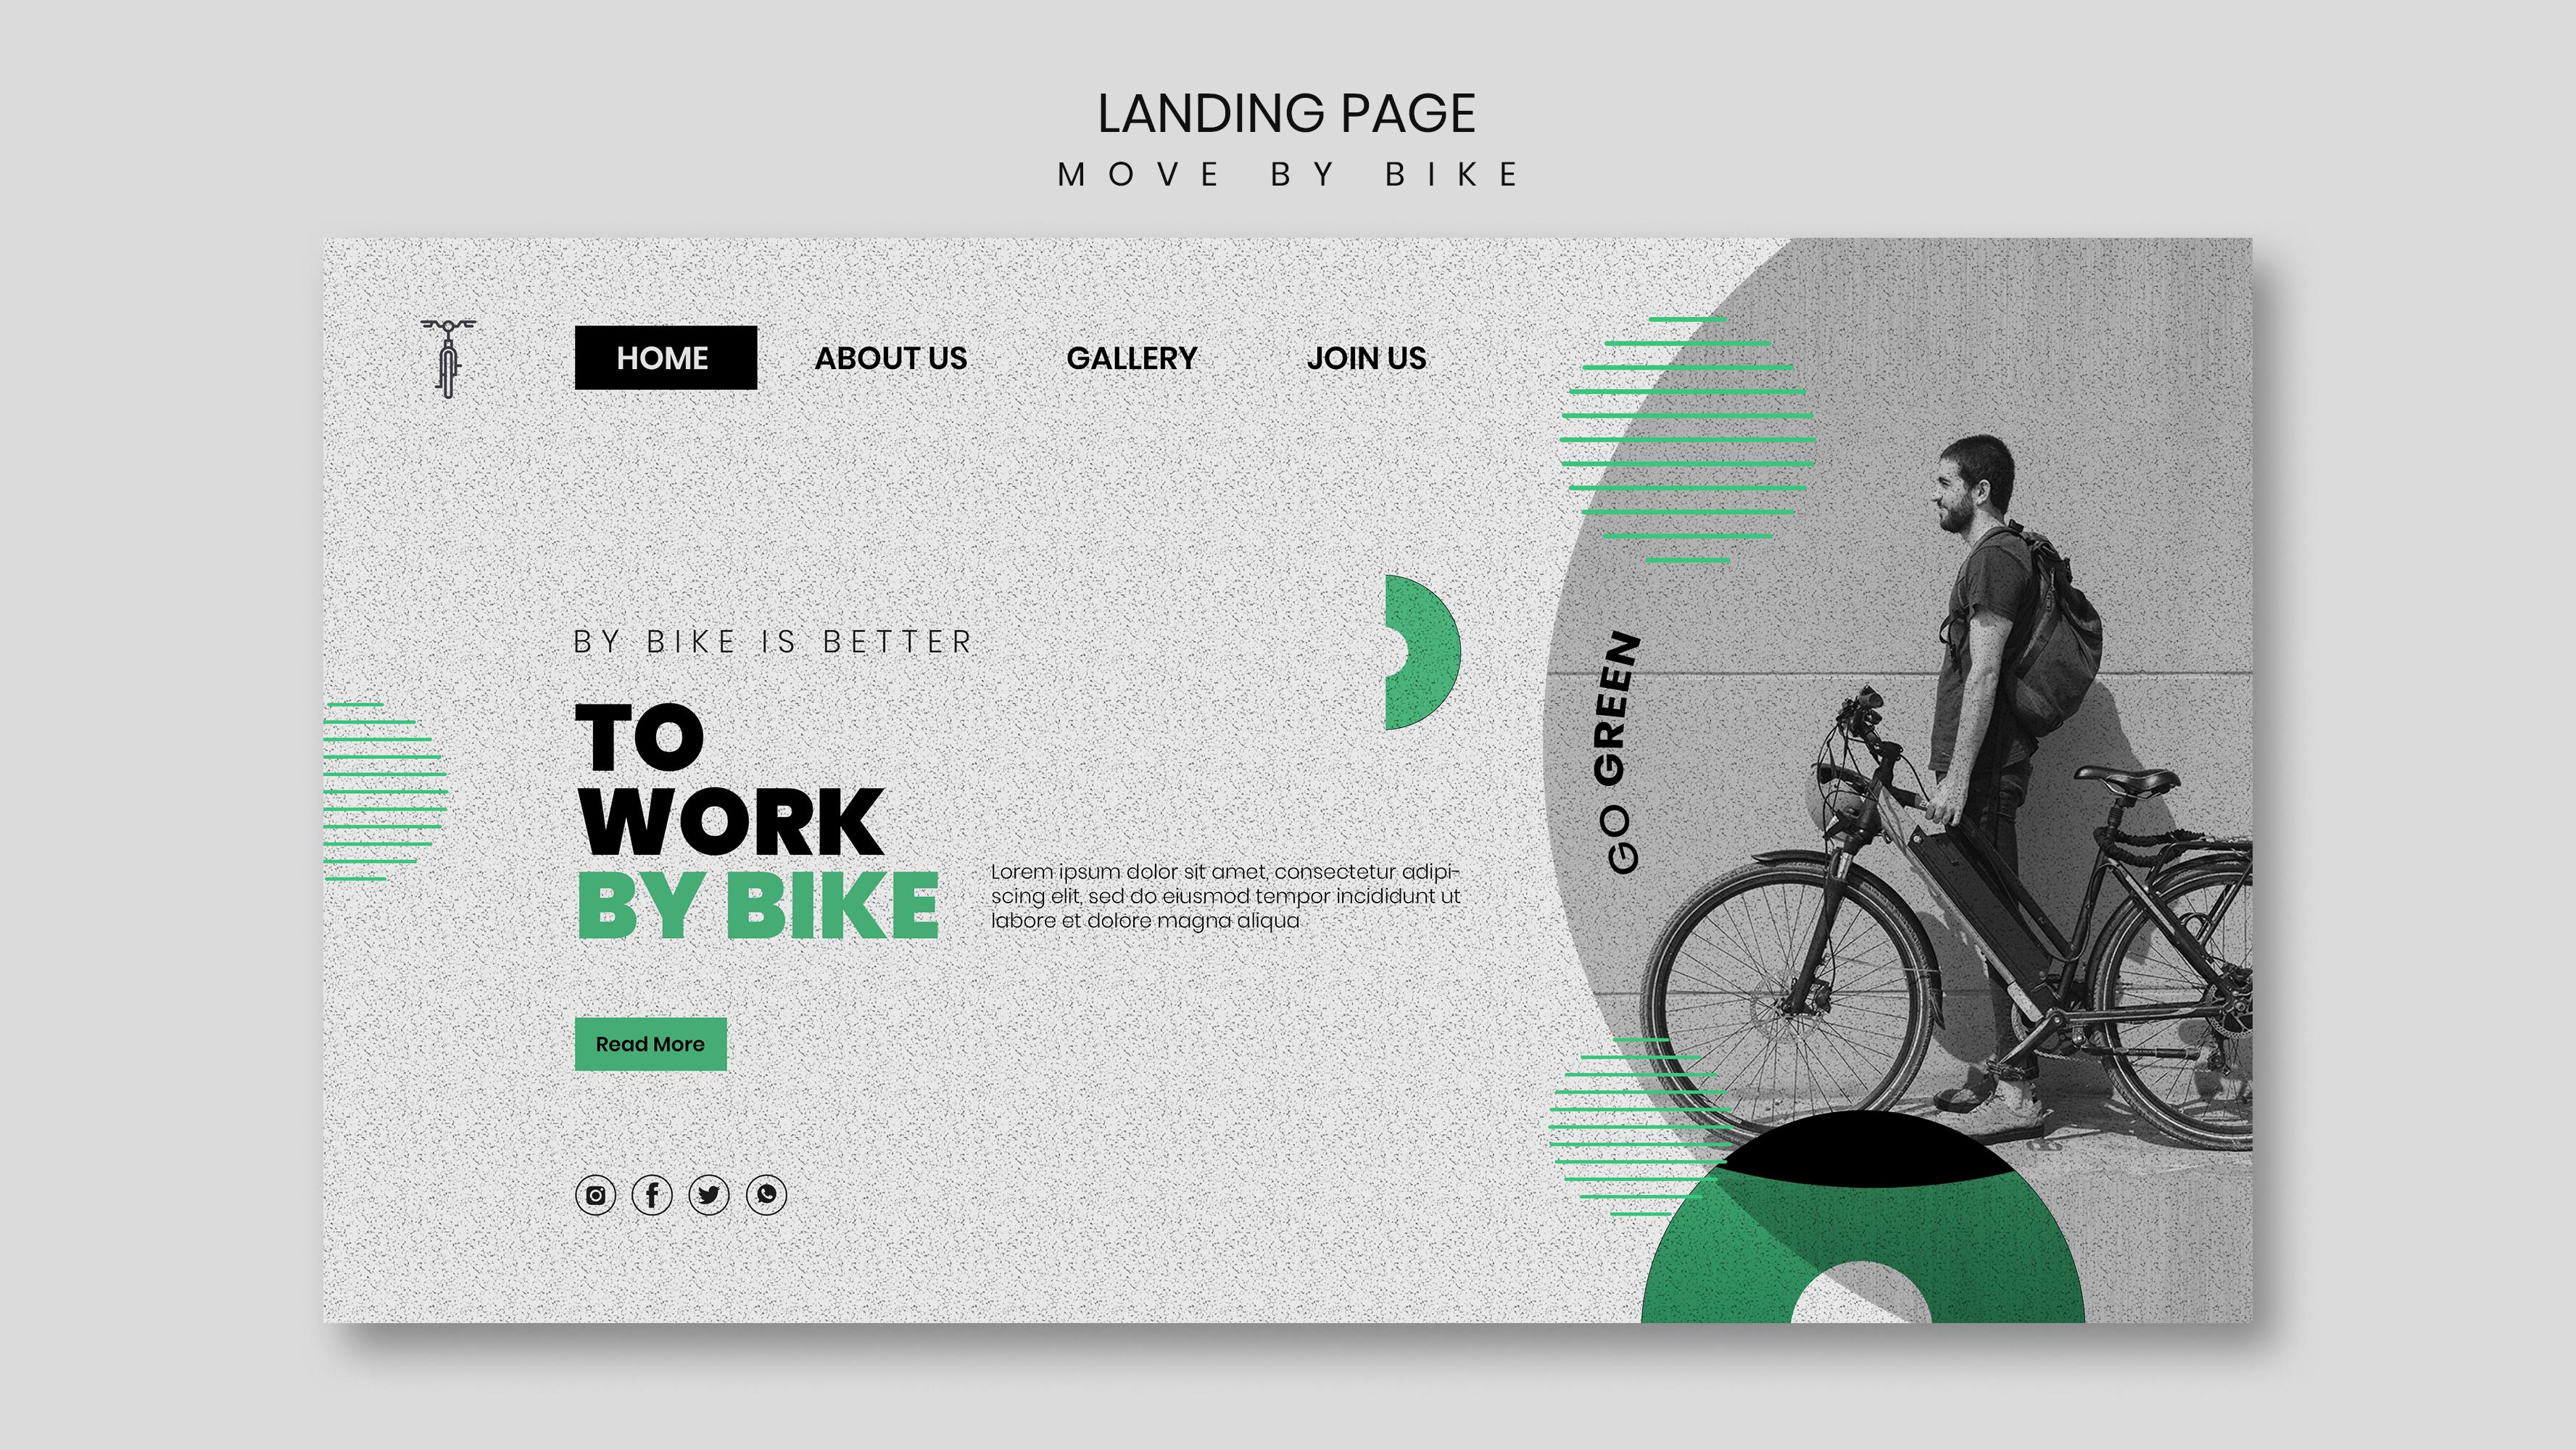 Psychological Principles of Design for Improved Landing Pages To Work By Bike